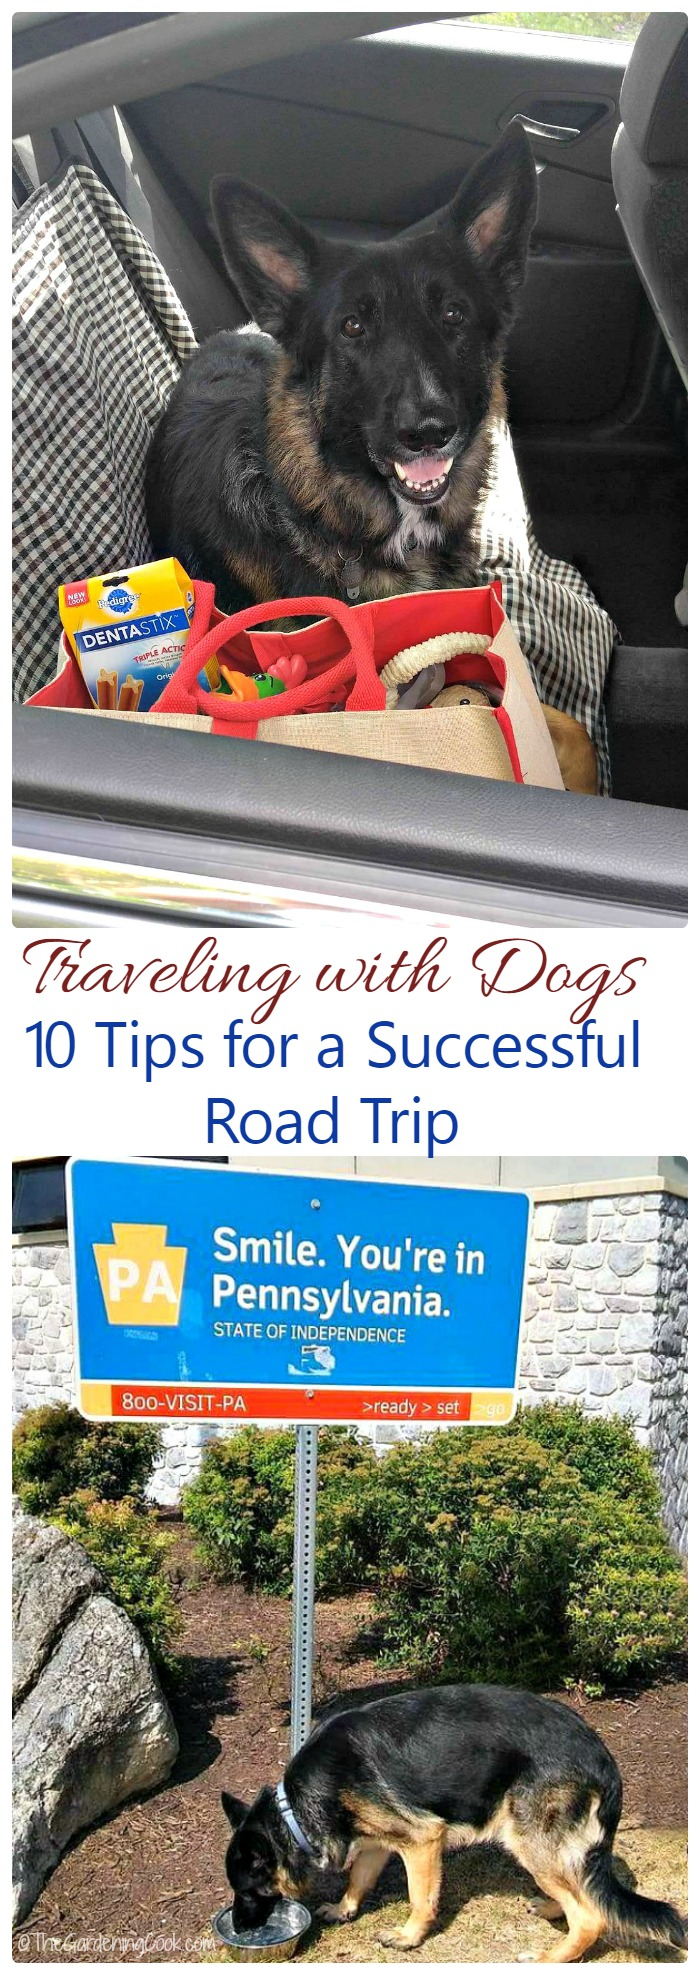 These 10 Tips for a Successful Dog Road Trip will make sure that y our family vacation with your four legged friend goes off without a hitch. thegardeningcook.com #RoadTripClose #DENTASTIX #ad